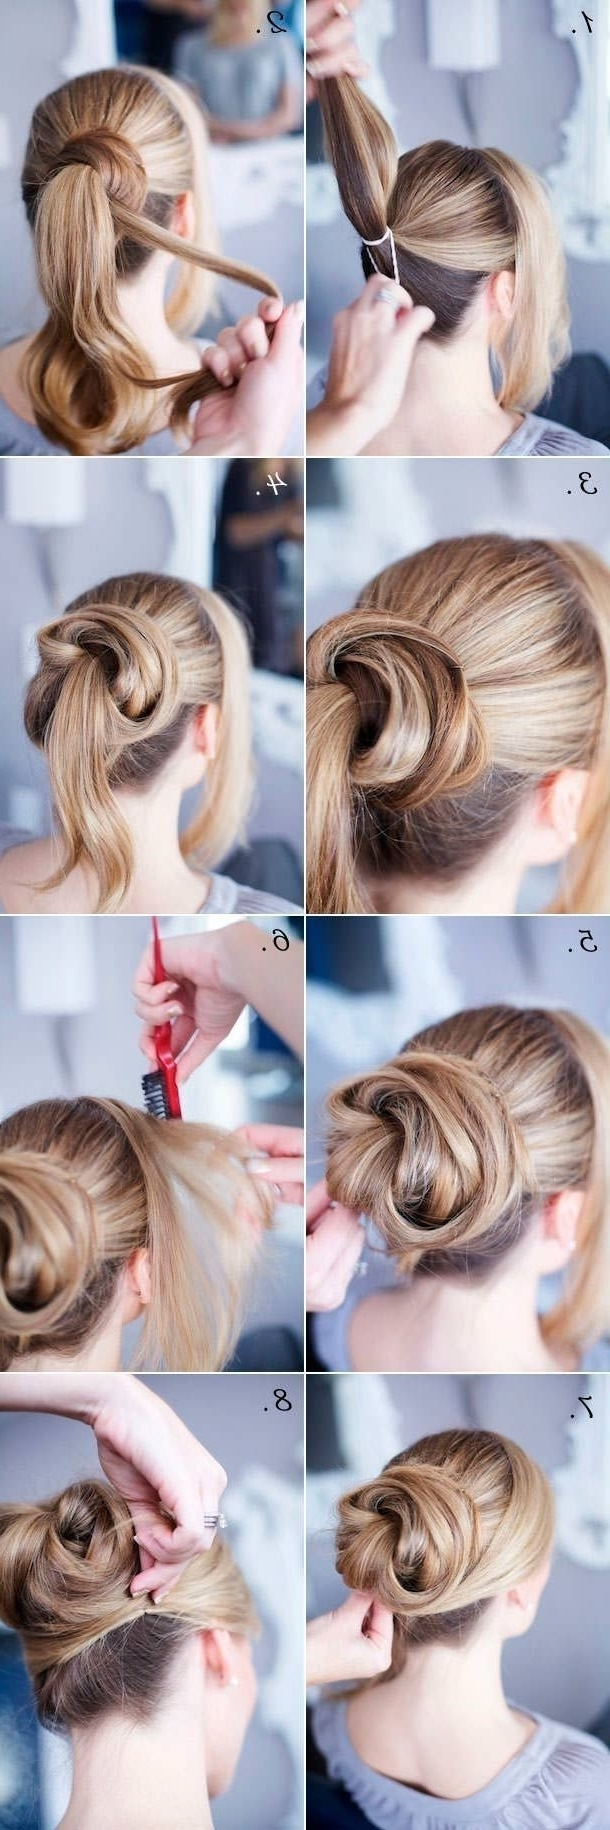 15 Photo Of Cute Easy Updo Hairstyles